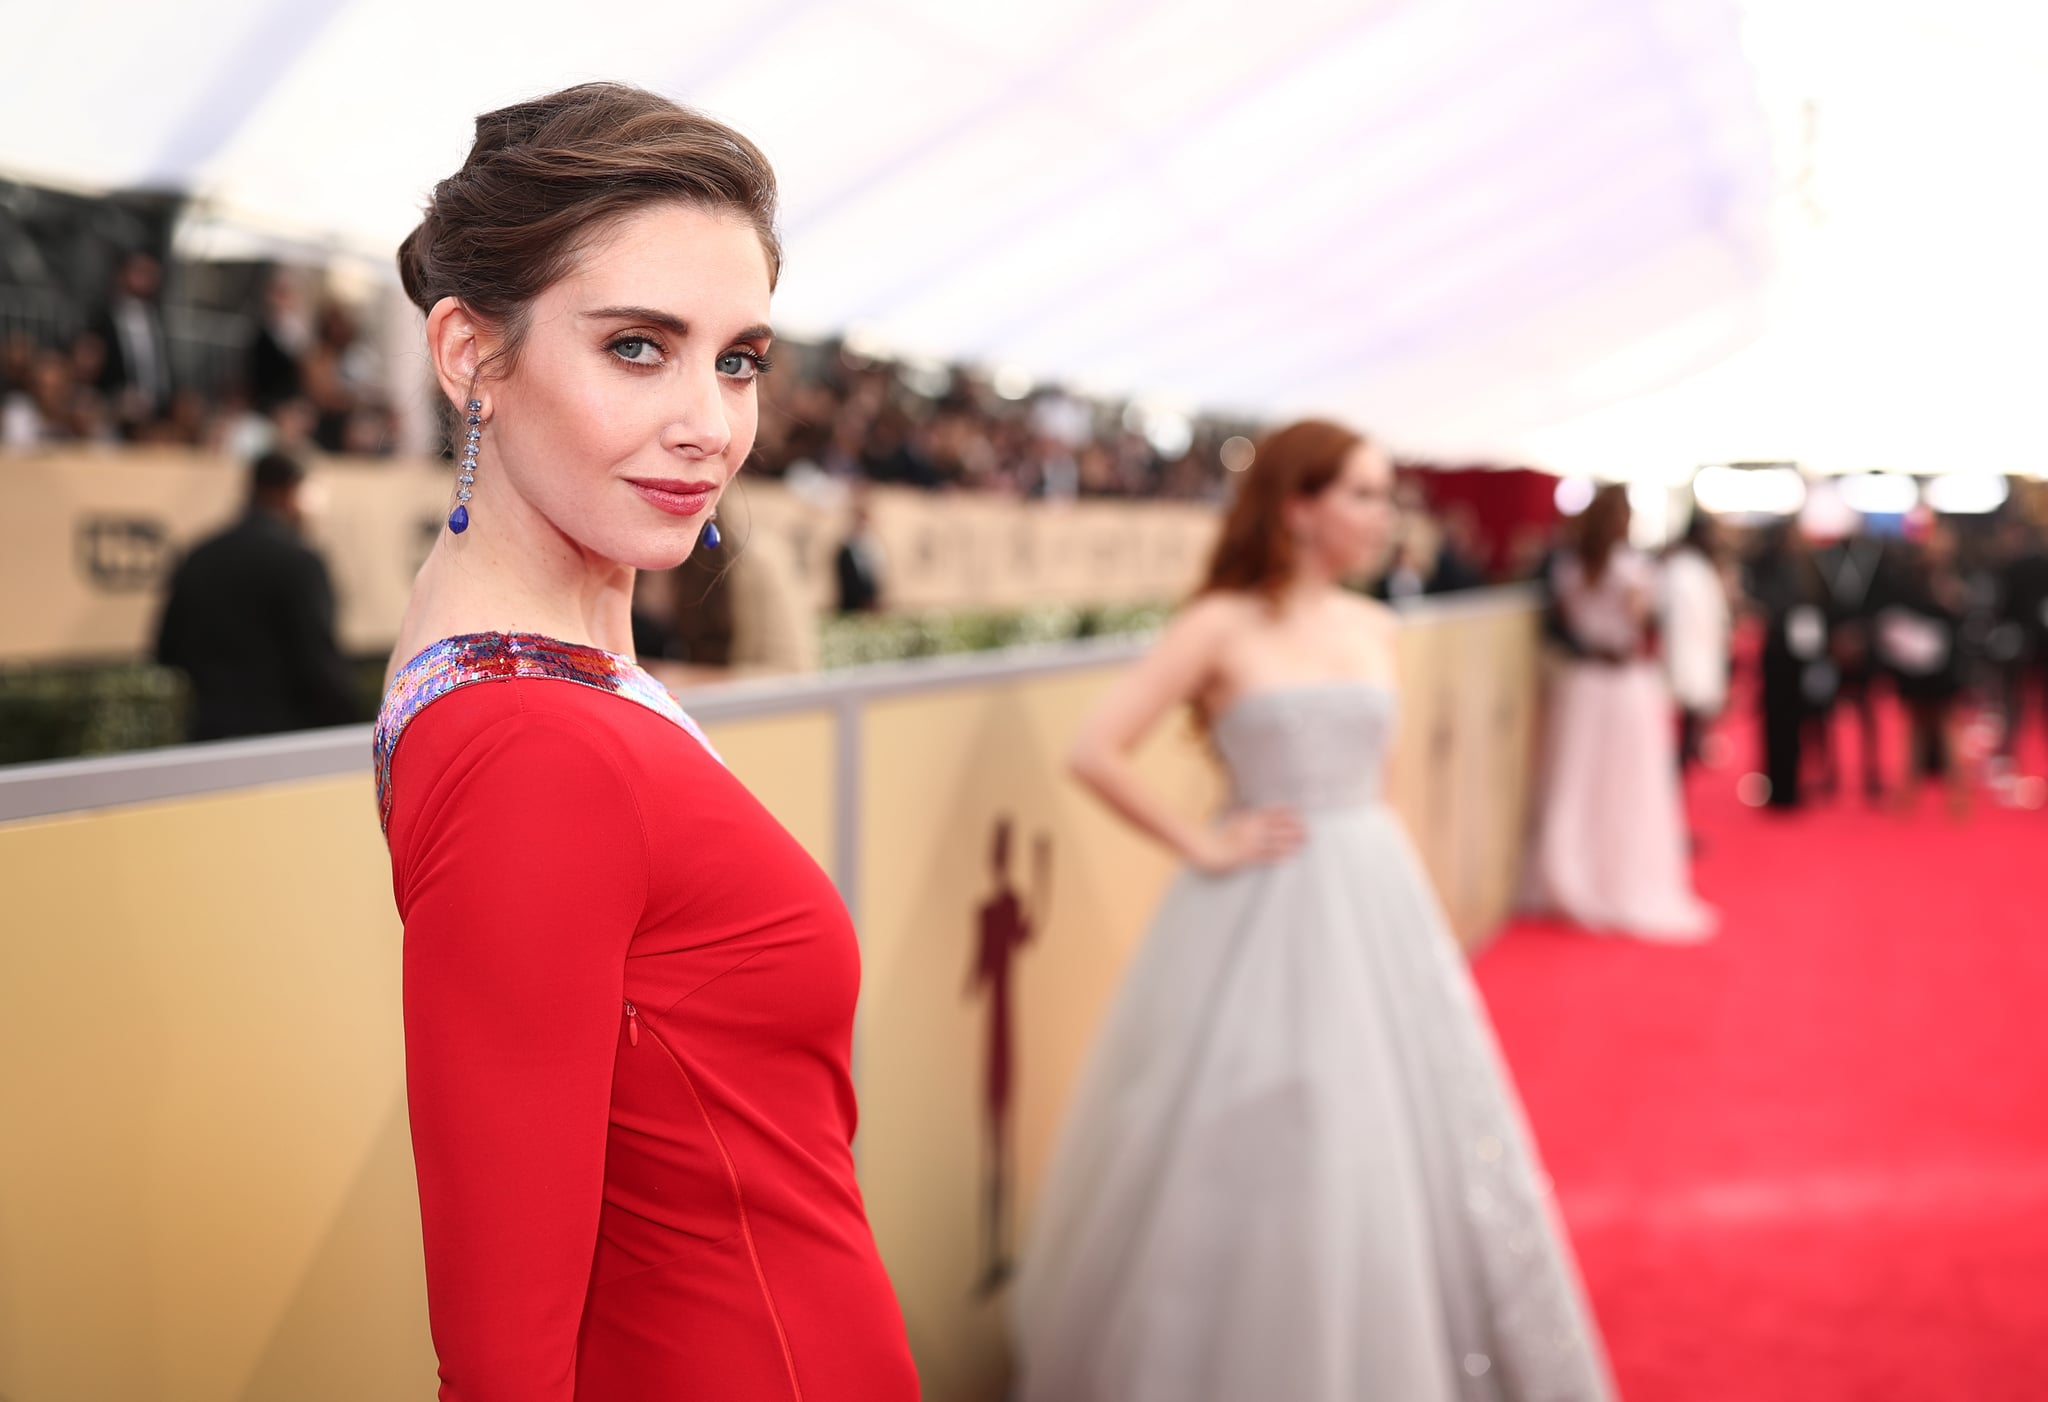 Alison Brie Addresses The Sexual Allegations Against Brother-In-Law James Franco